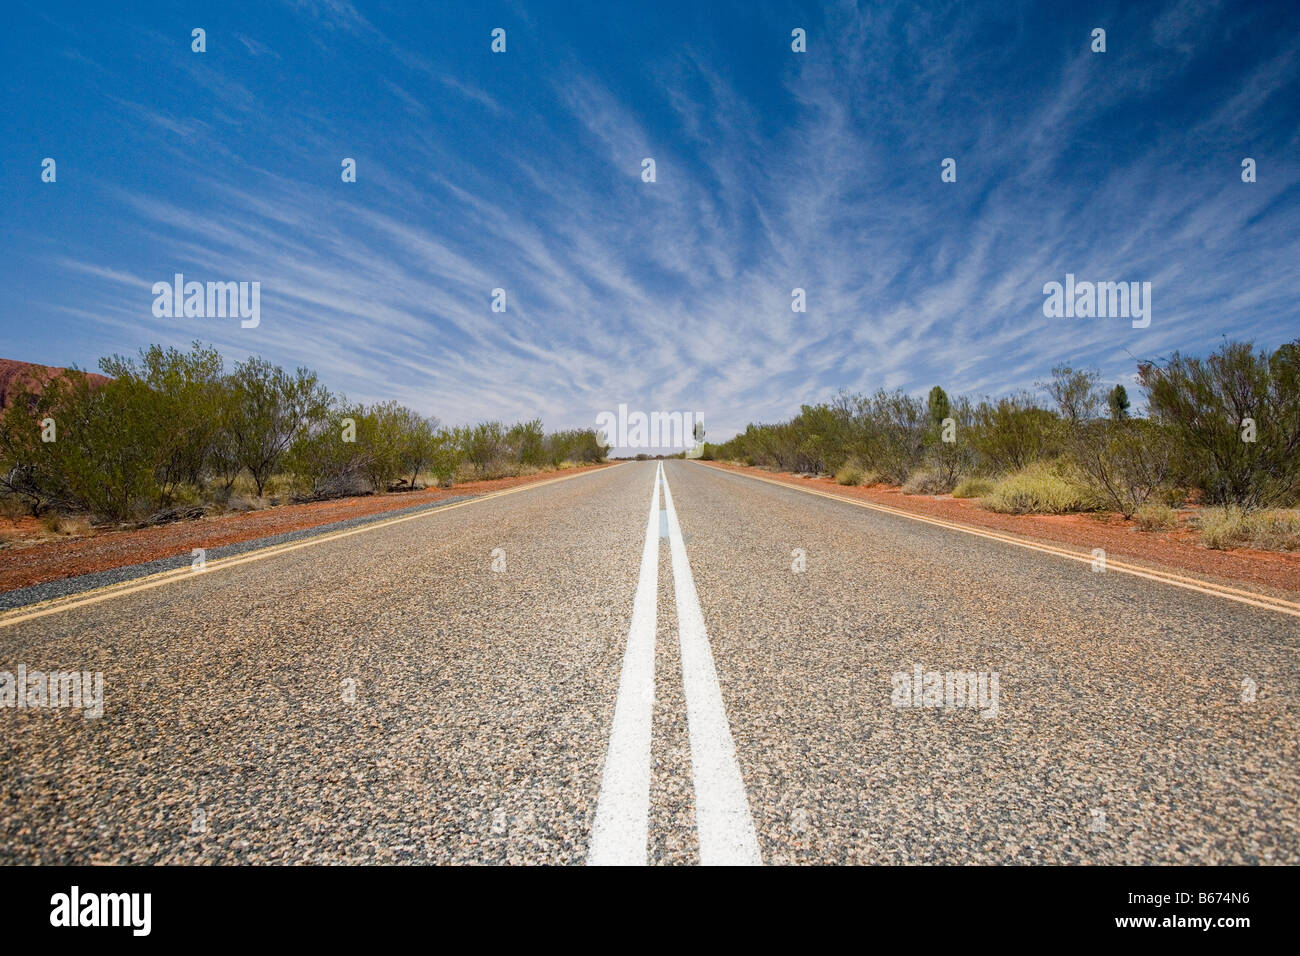 A country road in perth - Stock Image